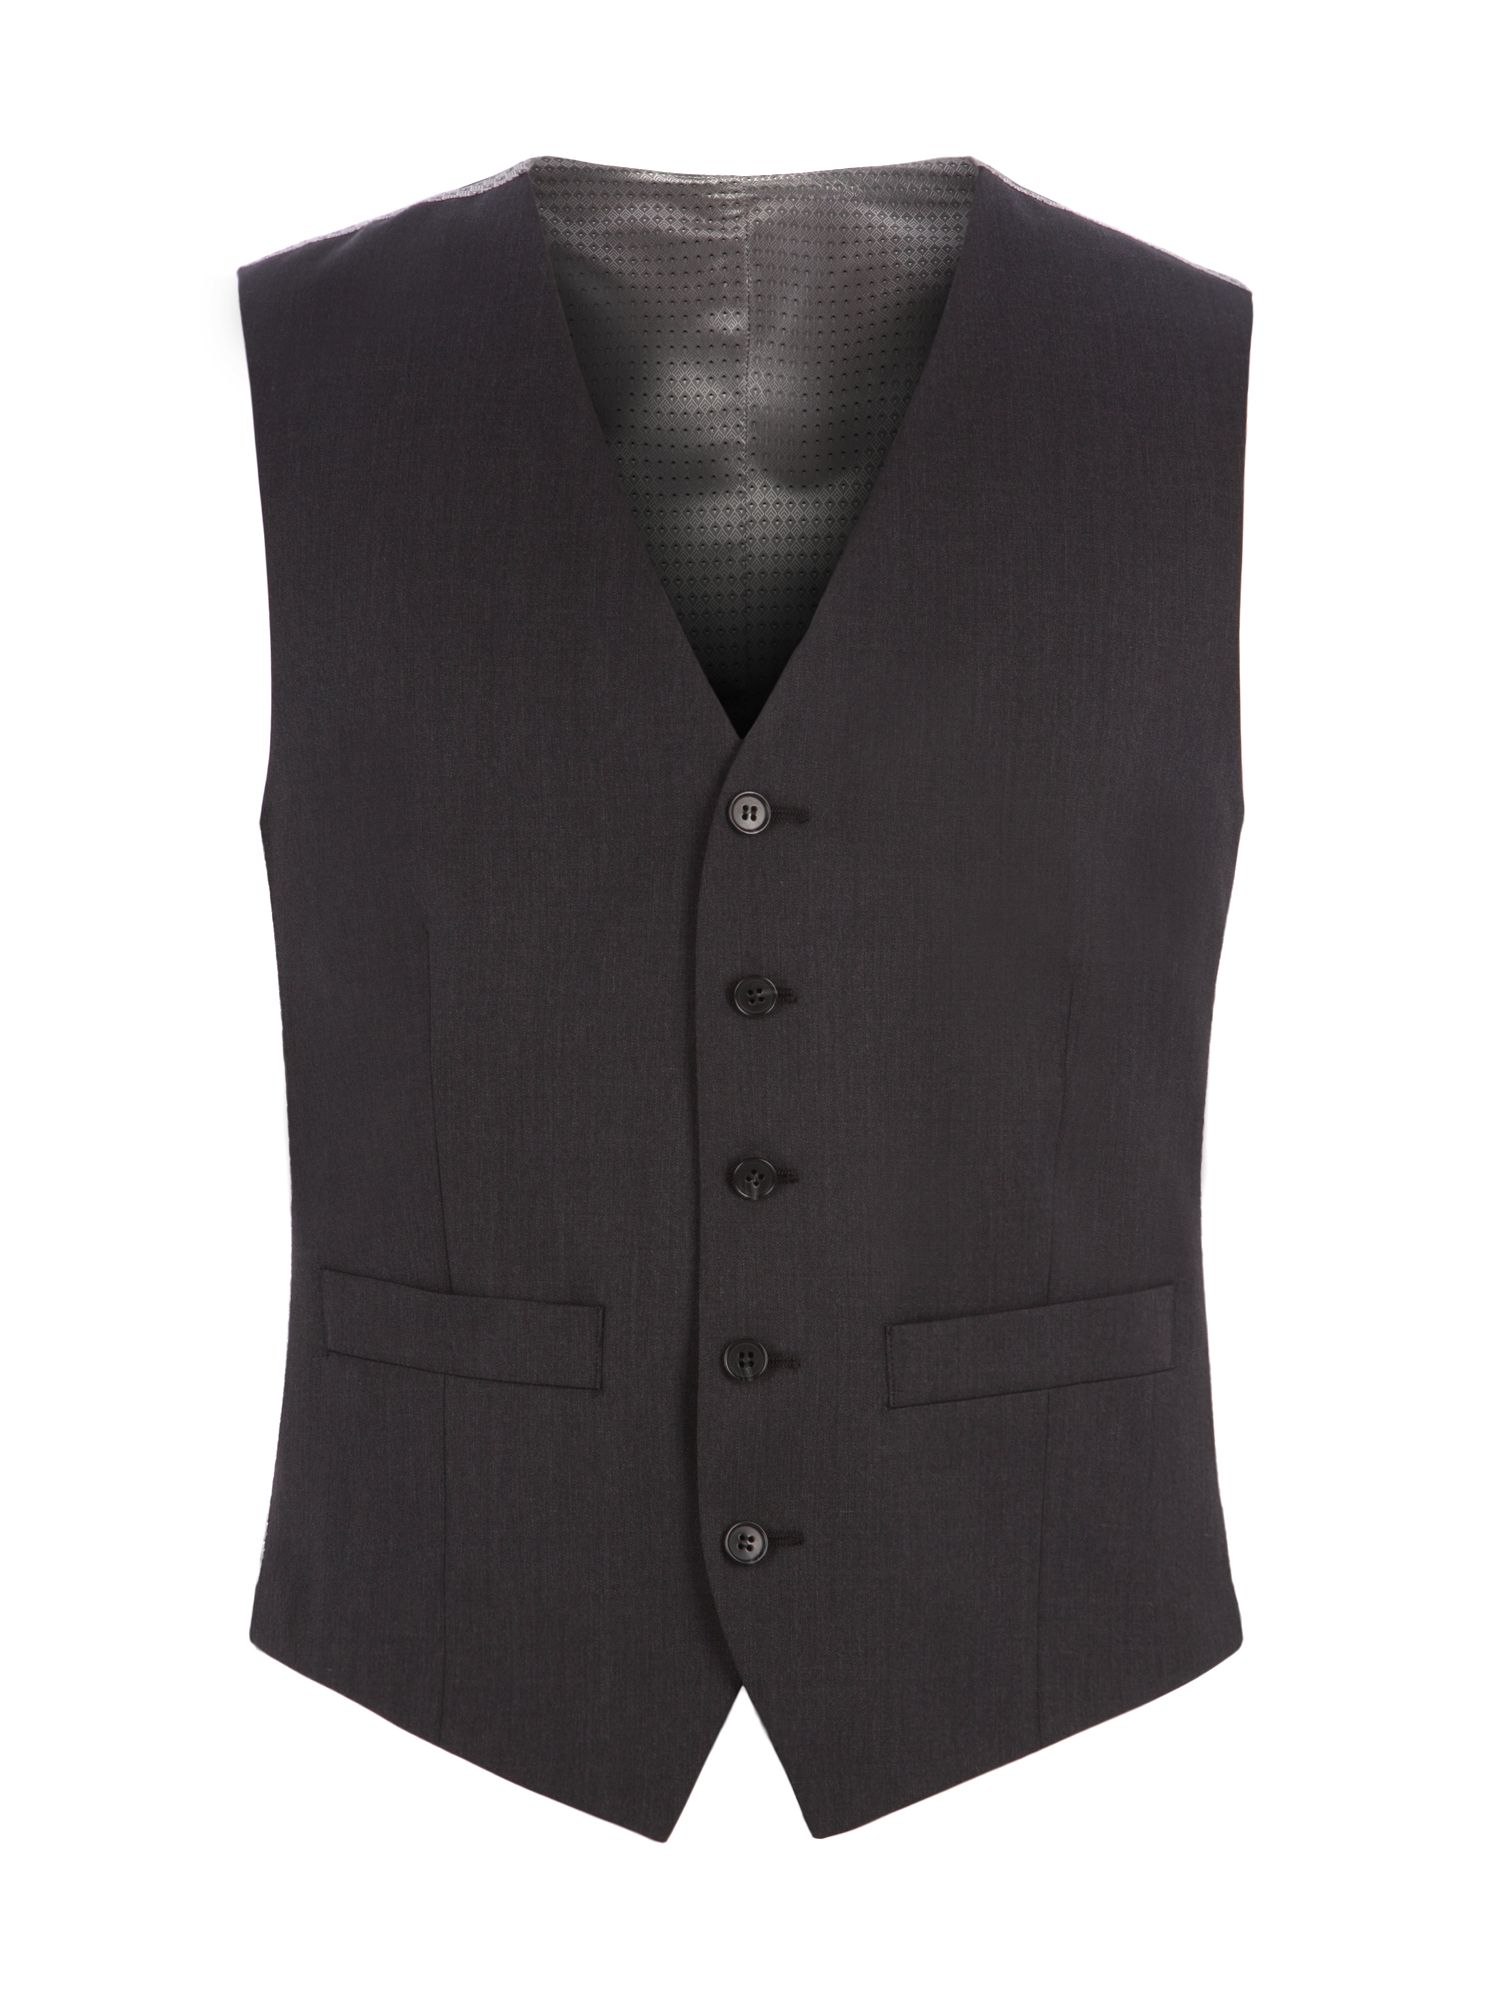 Men's Pierre Cardin Jack Charcoal Twill Performance Vest, Charcoal